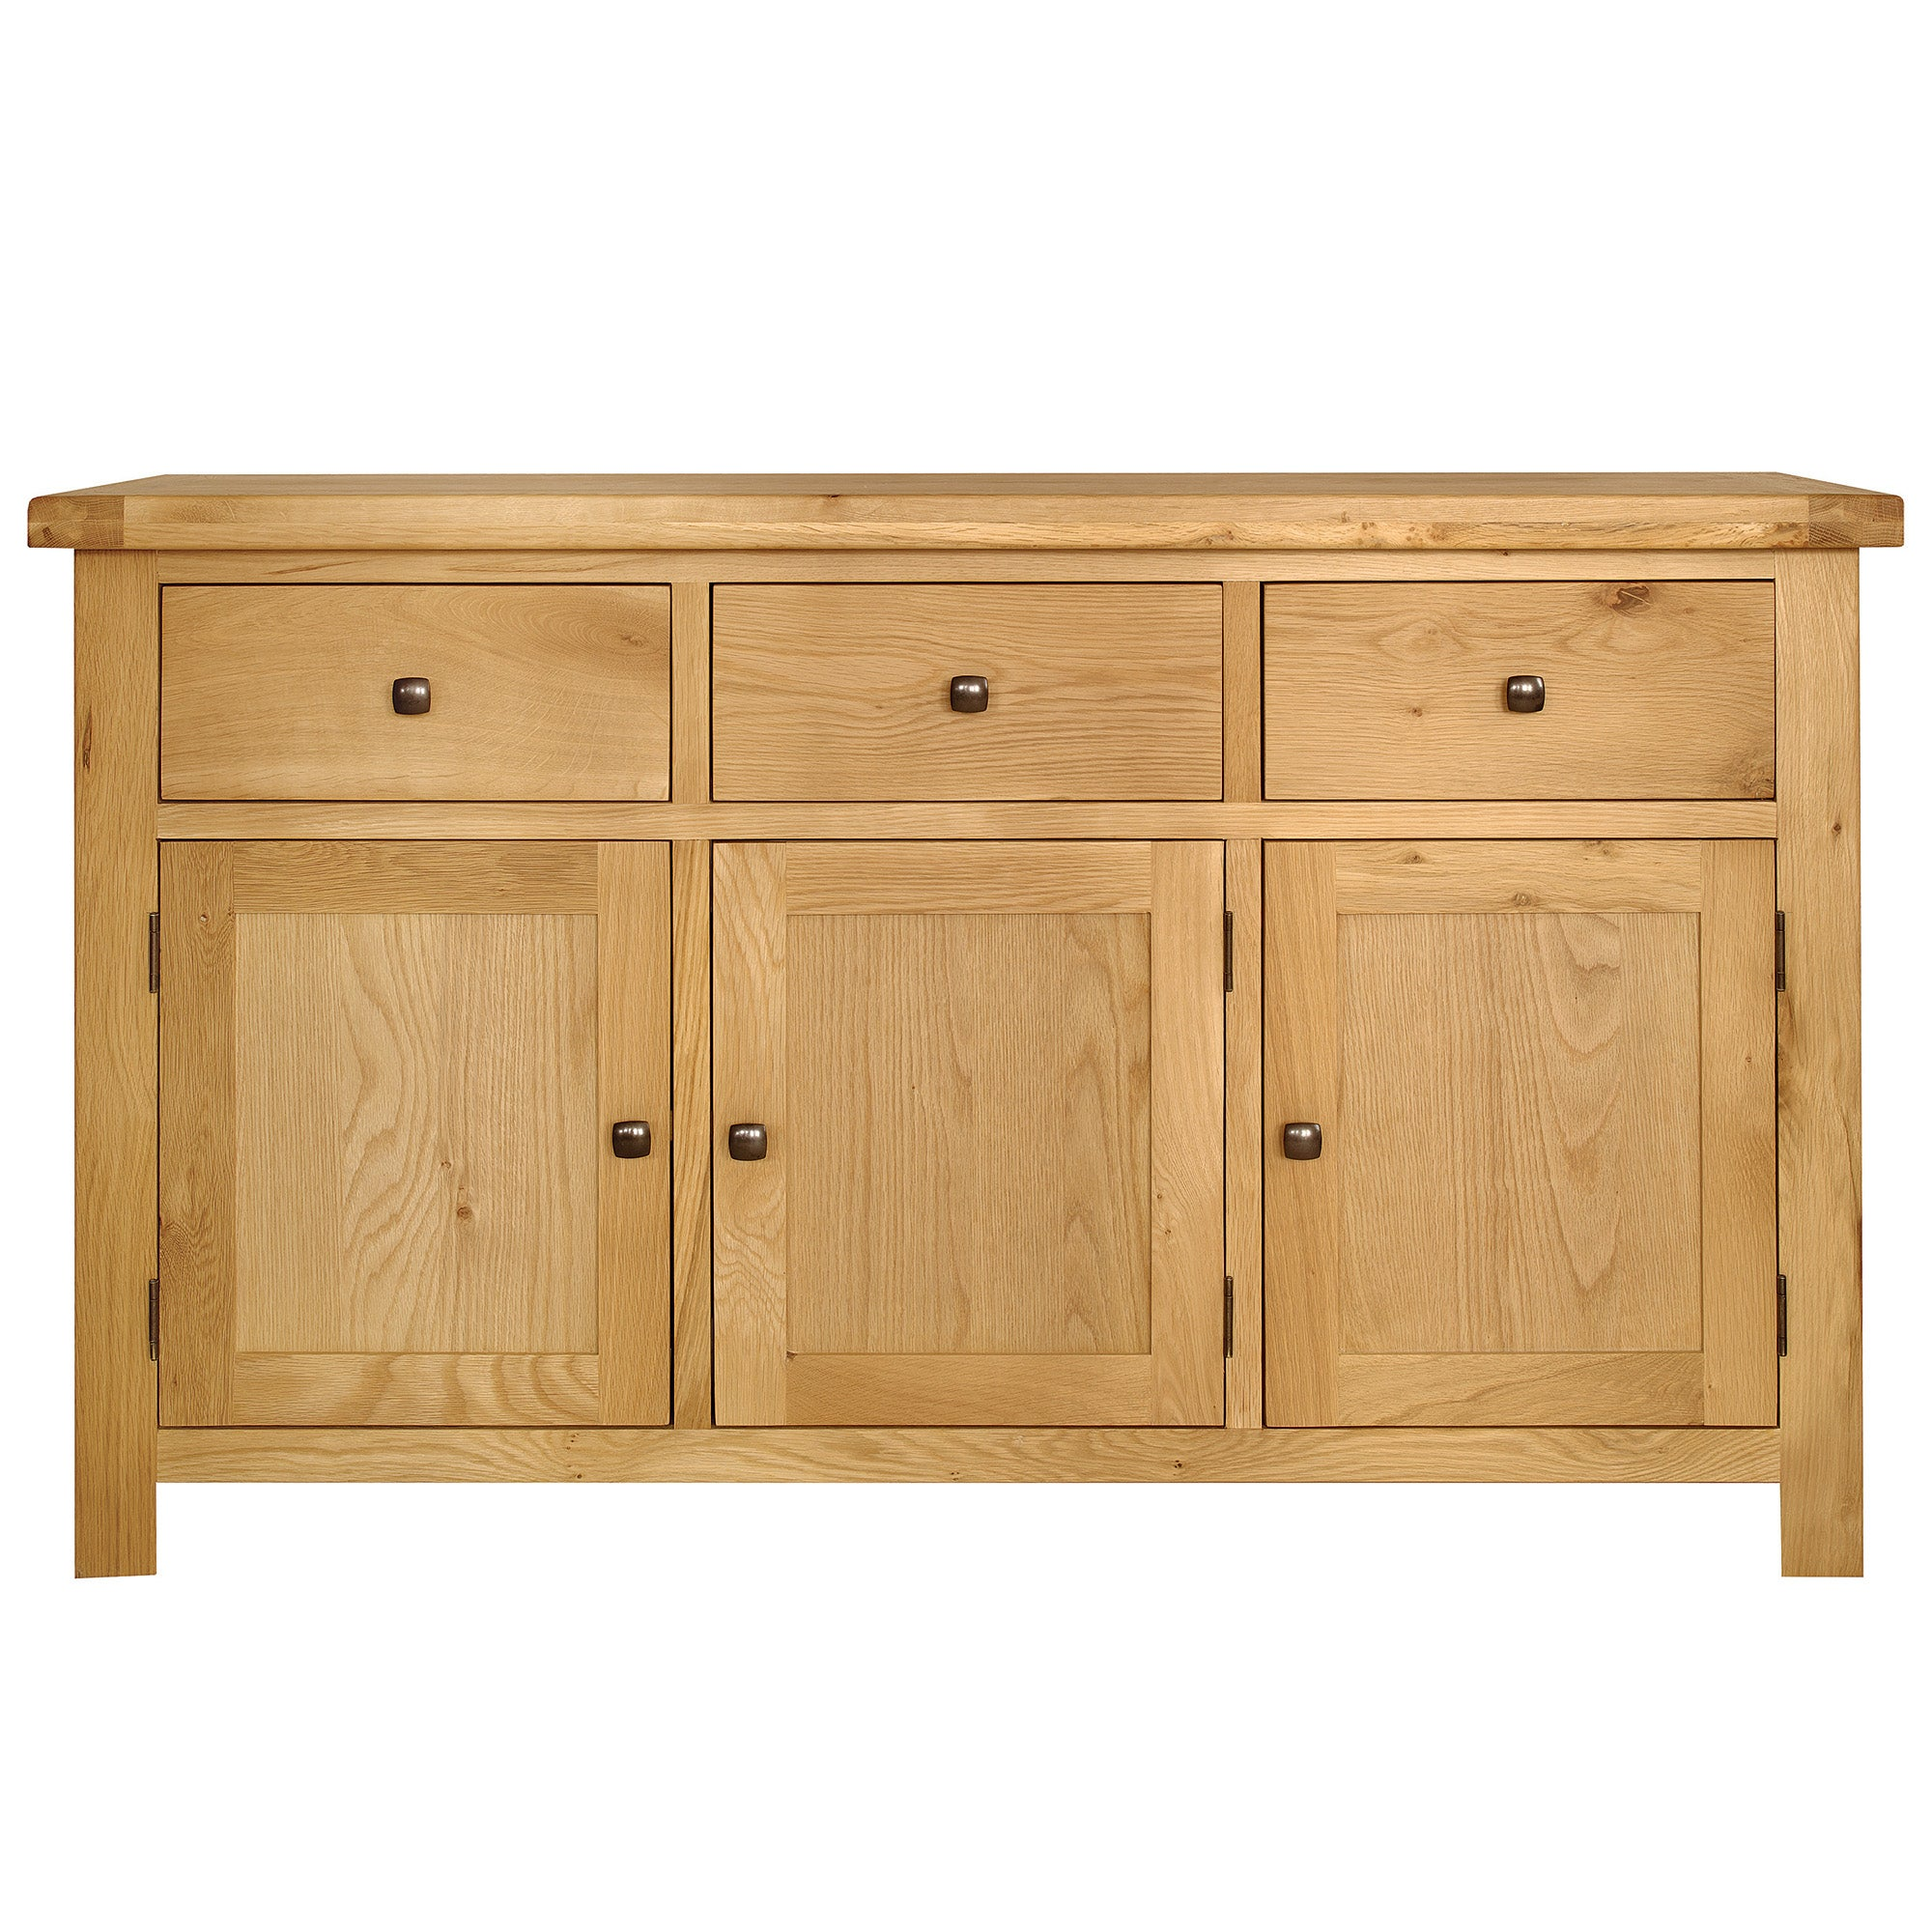 Harrogate Oak Dining Furniture Collection